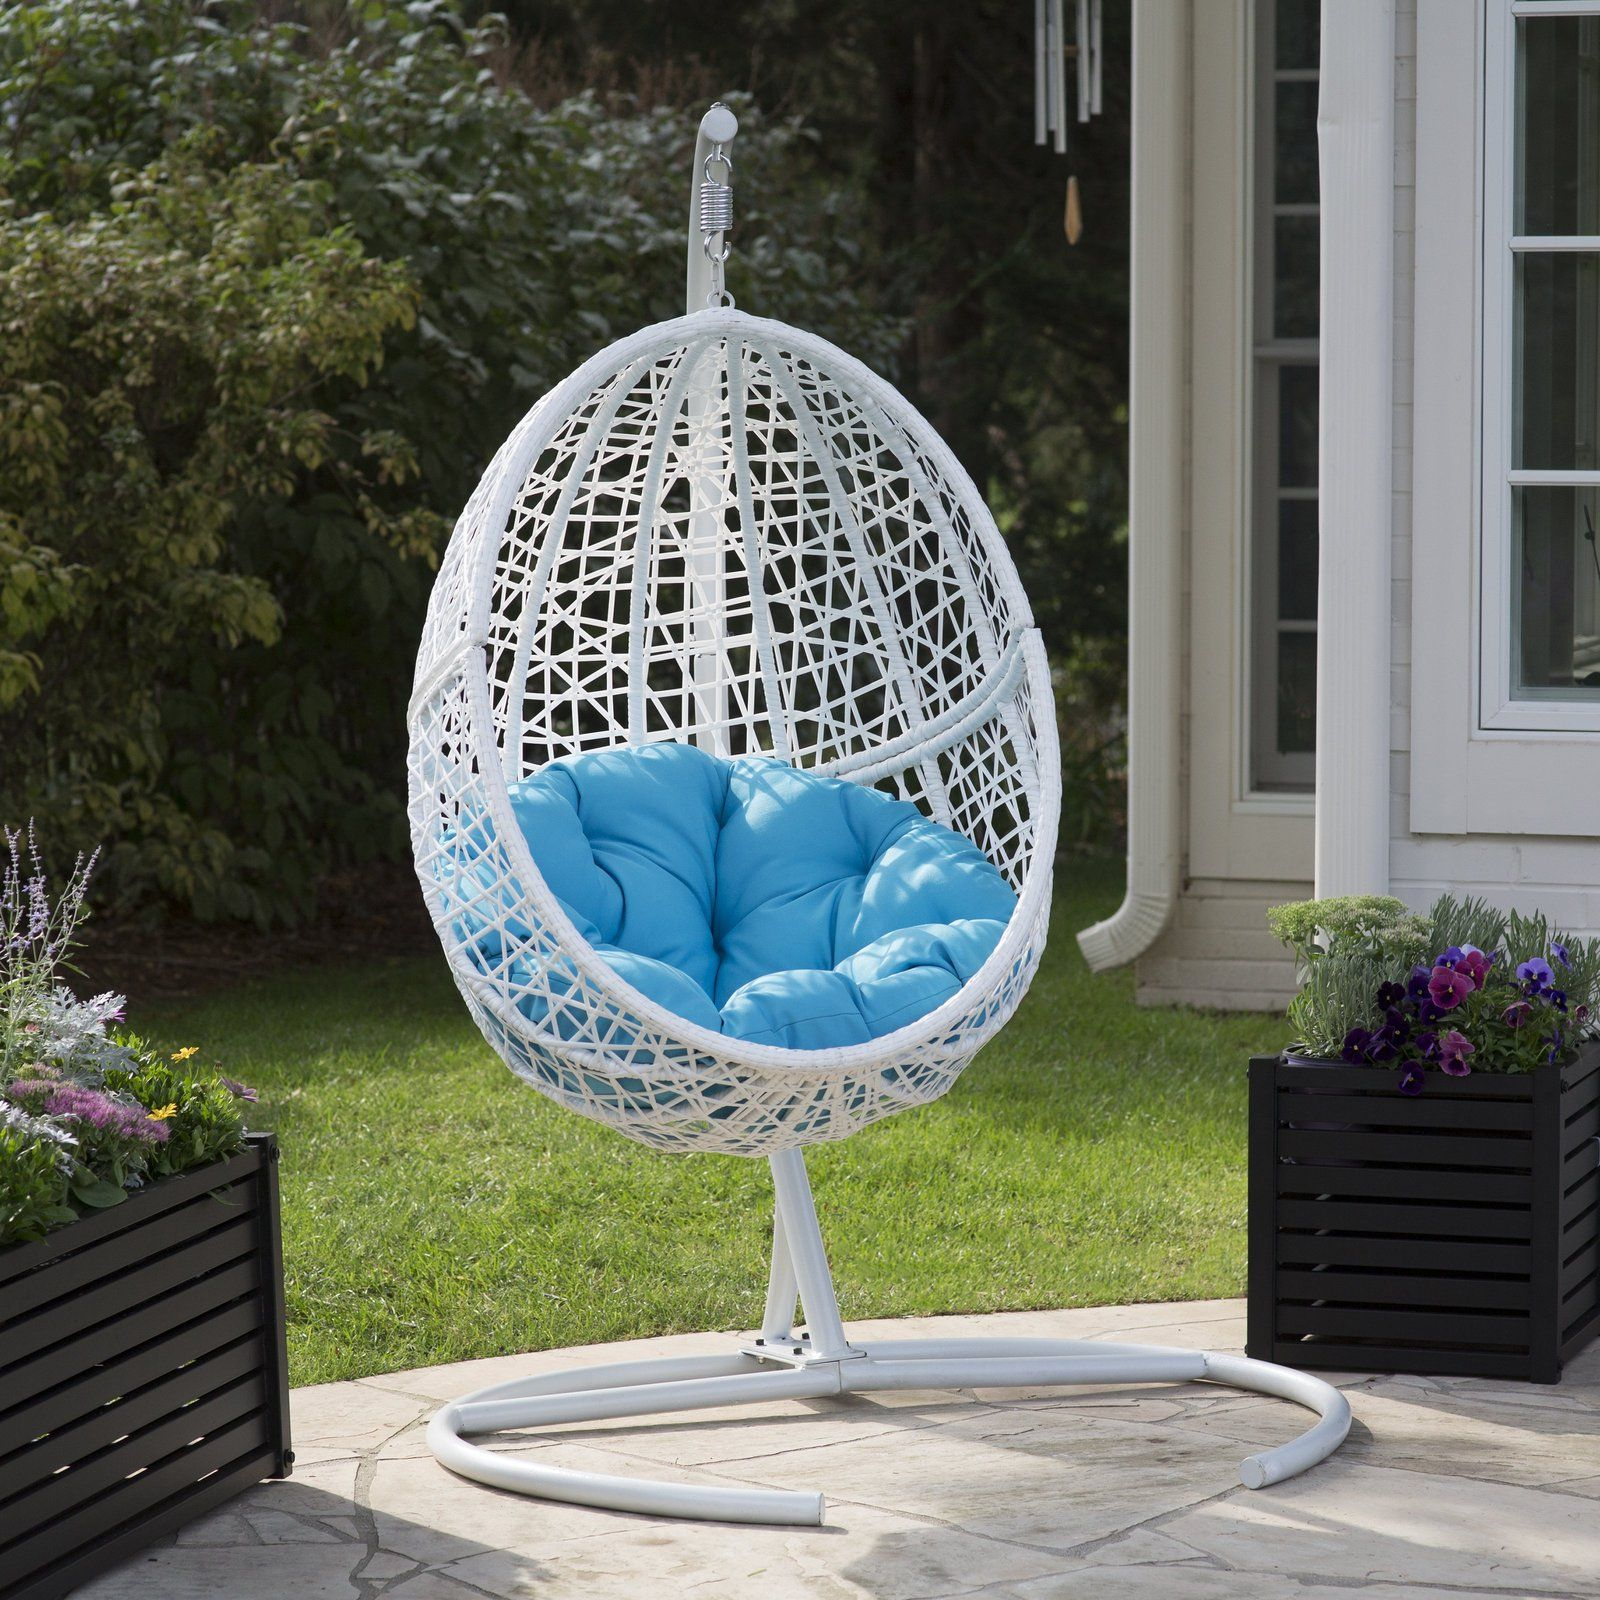 Charmant Hanging Egg Chair Swing With Cushion Forget The Hammock Use This Egg Chair  Swing To Relaxation And To Lounge Around.